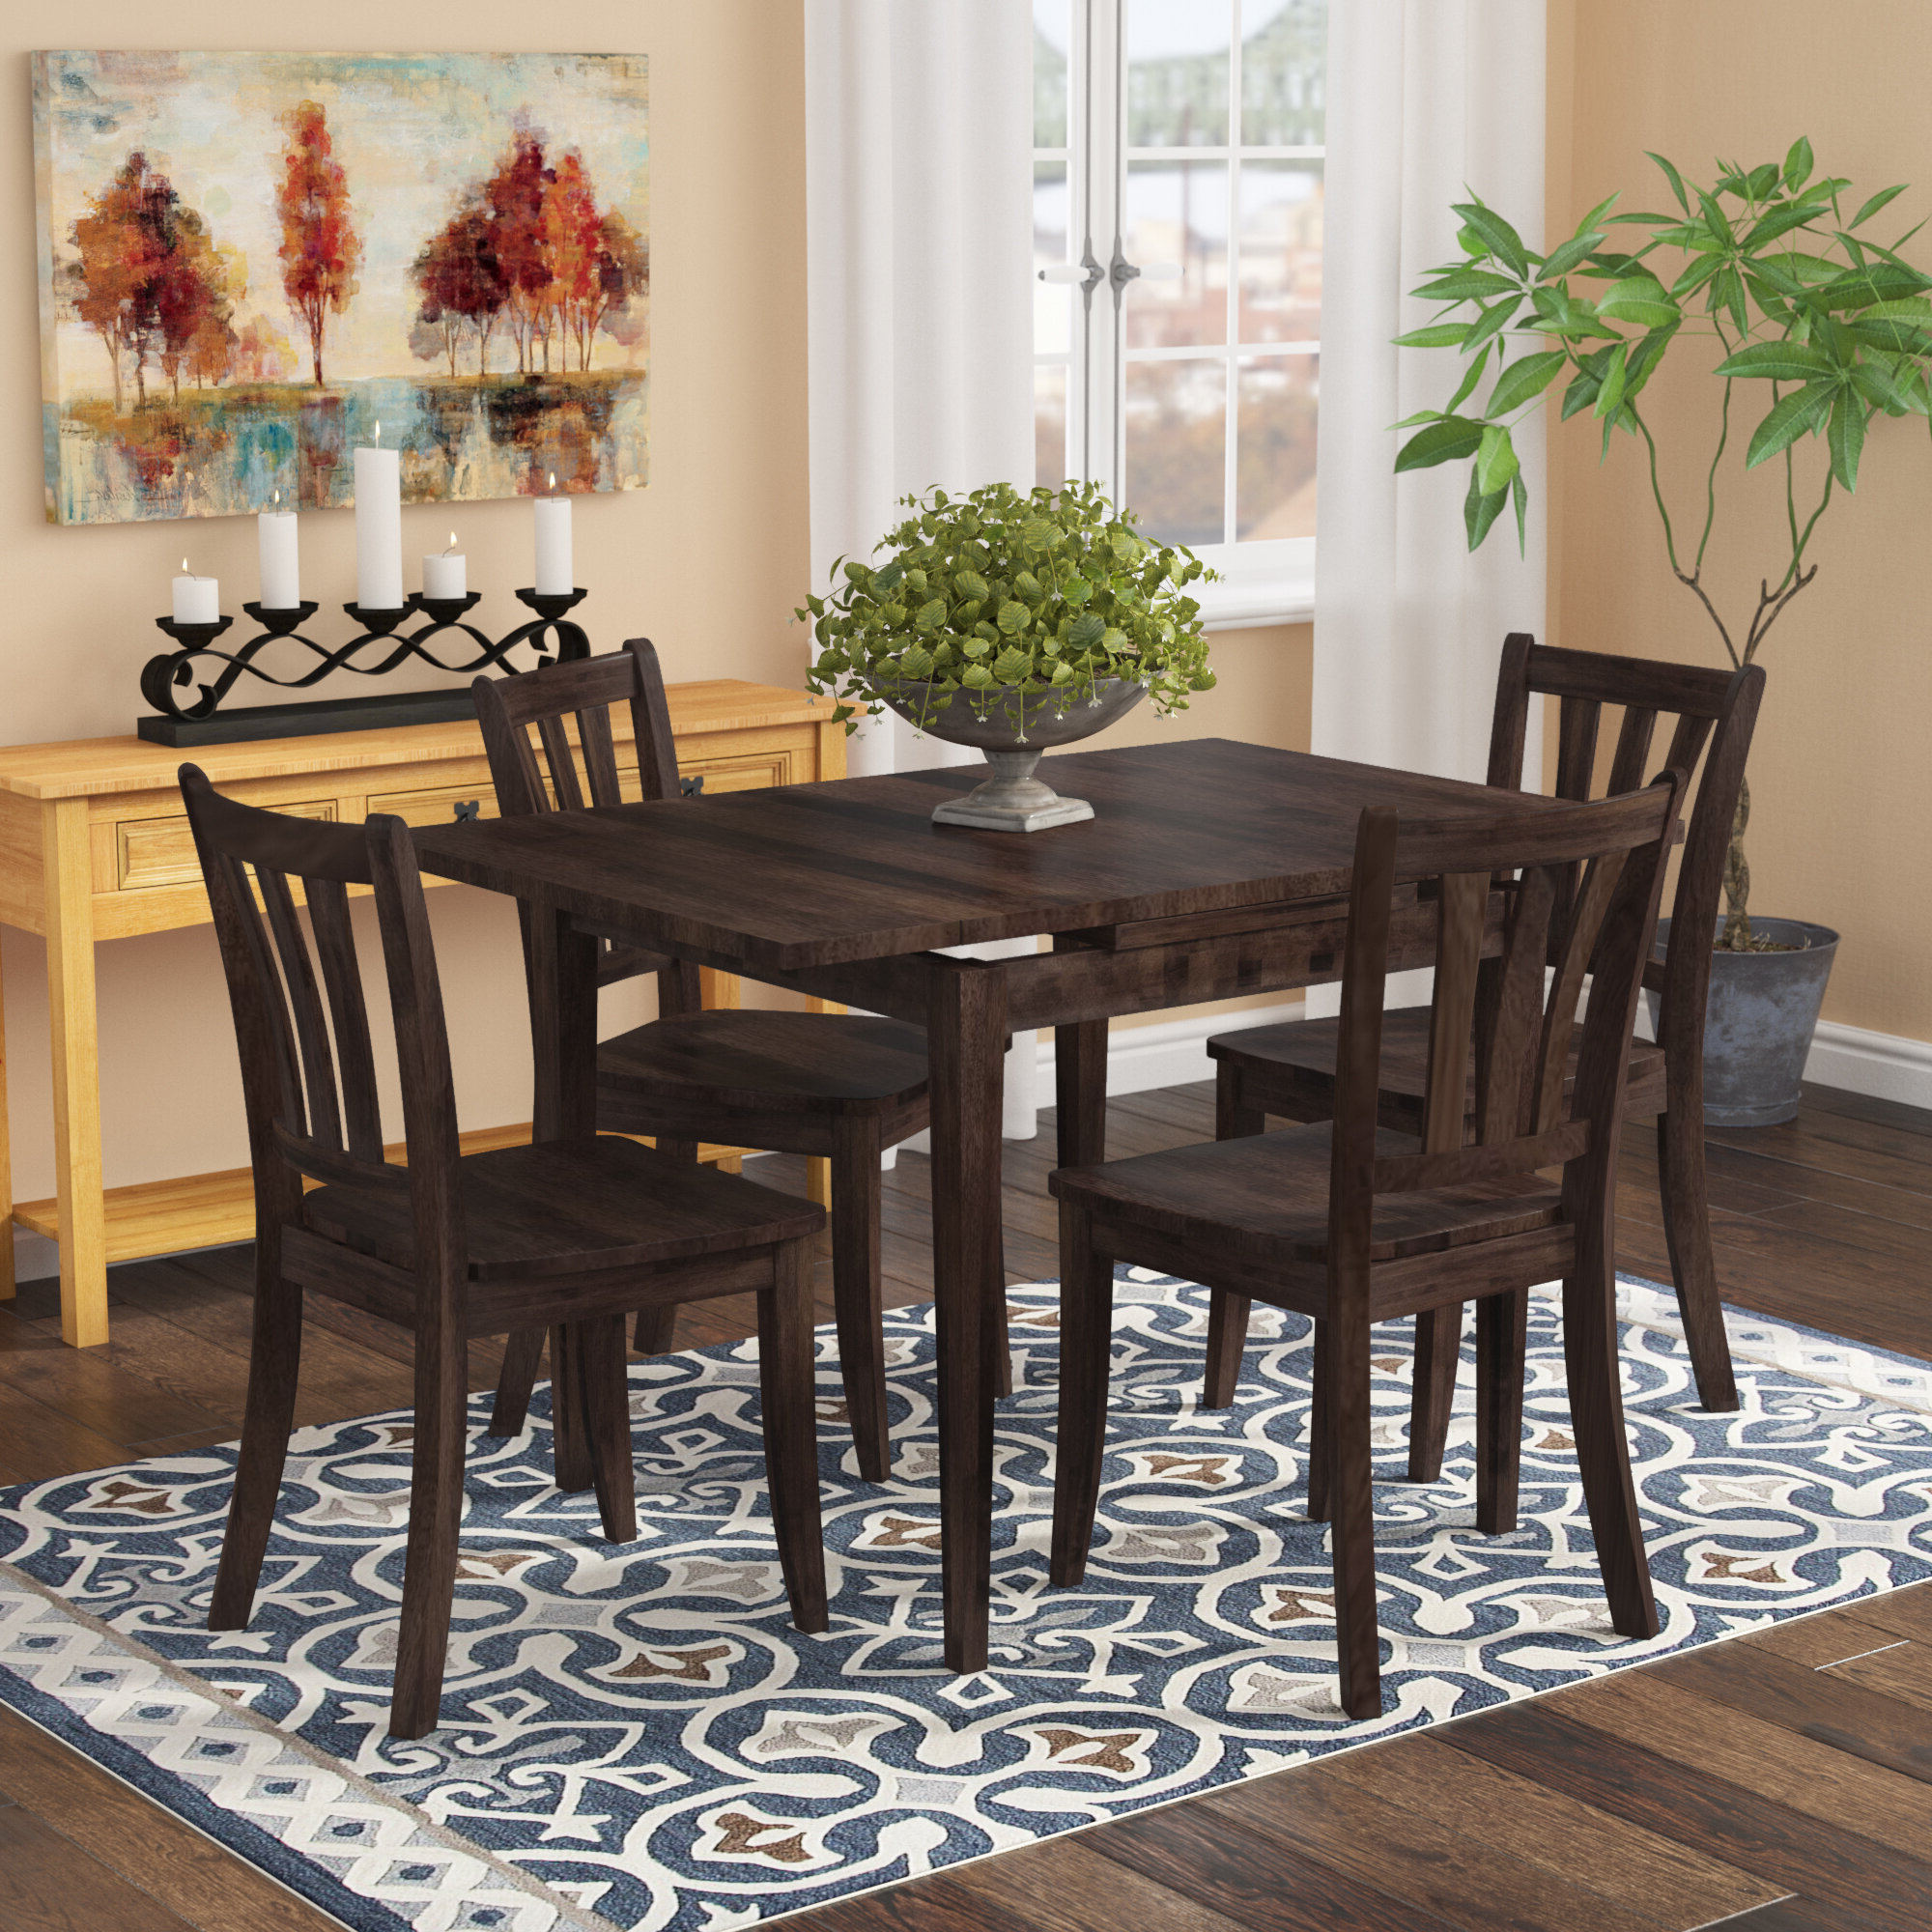 Liggett 5 Piece Extendable Solid Wood Dining Set Inside Favorite Goodman 5 Piece Solid Wood Dining Sets (Set Of 5) (View 16 of 20)